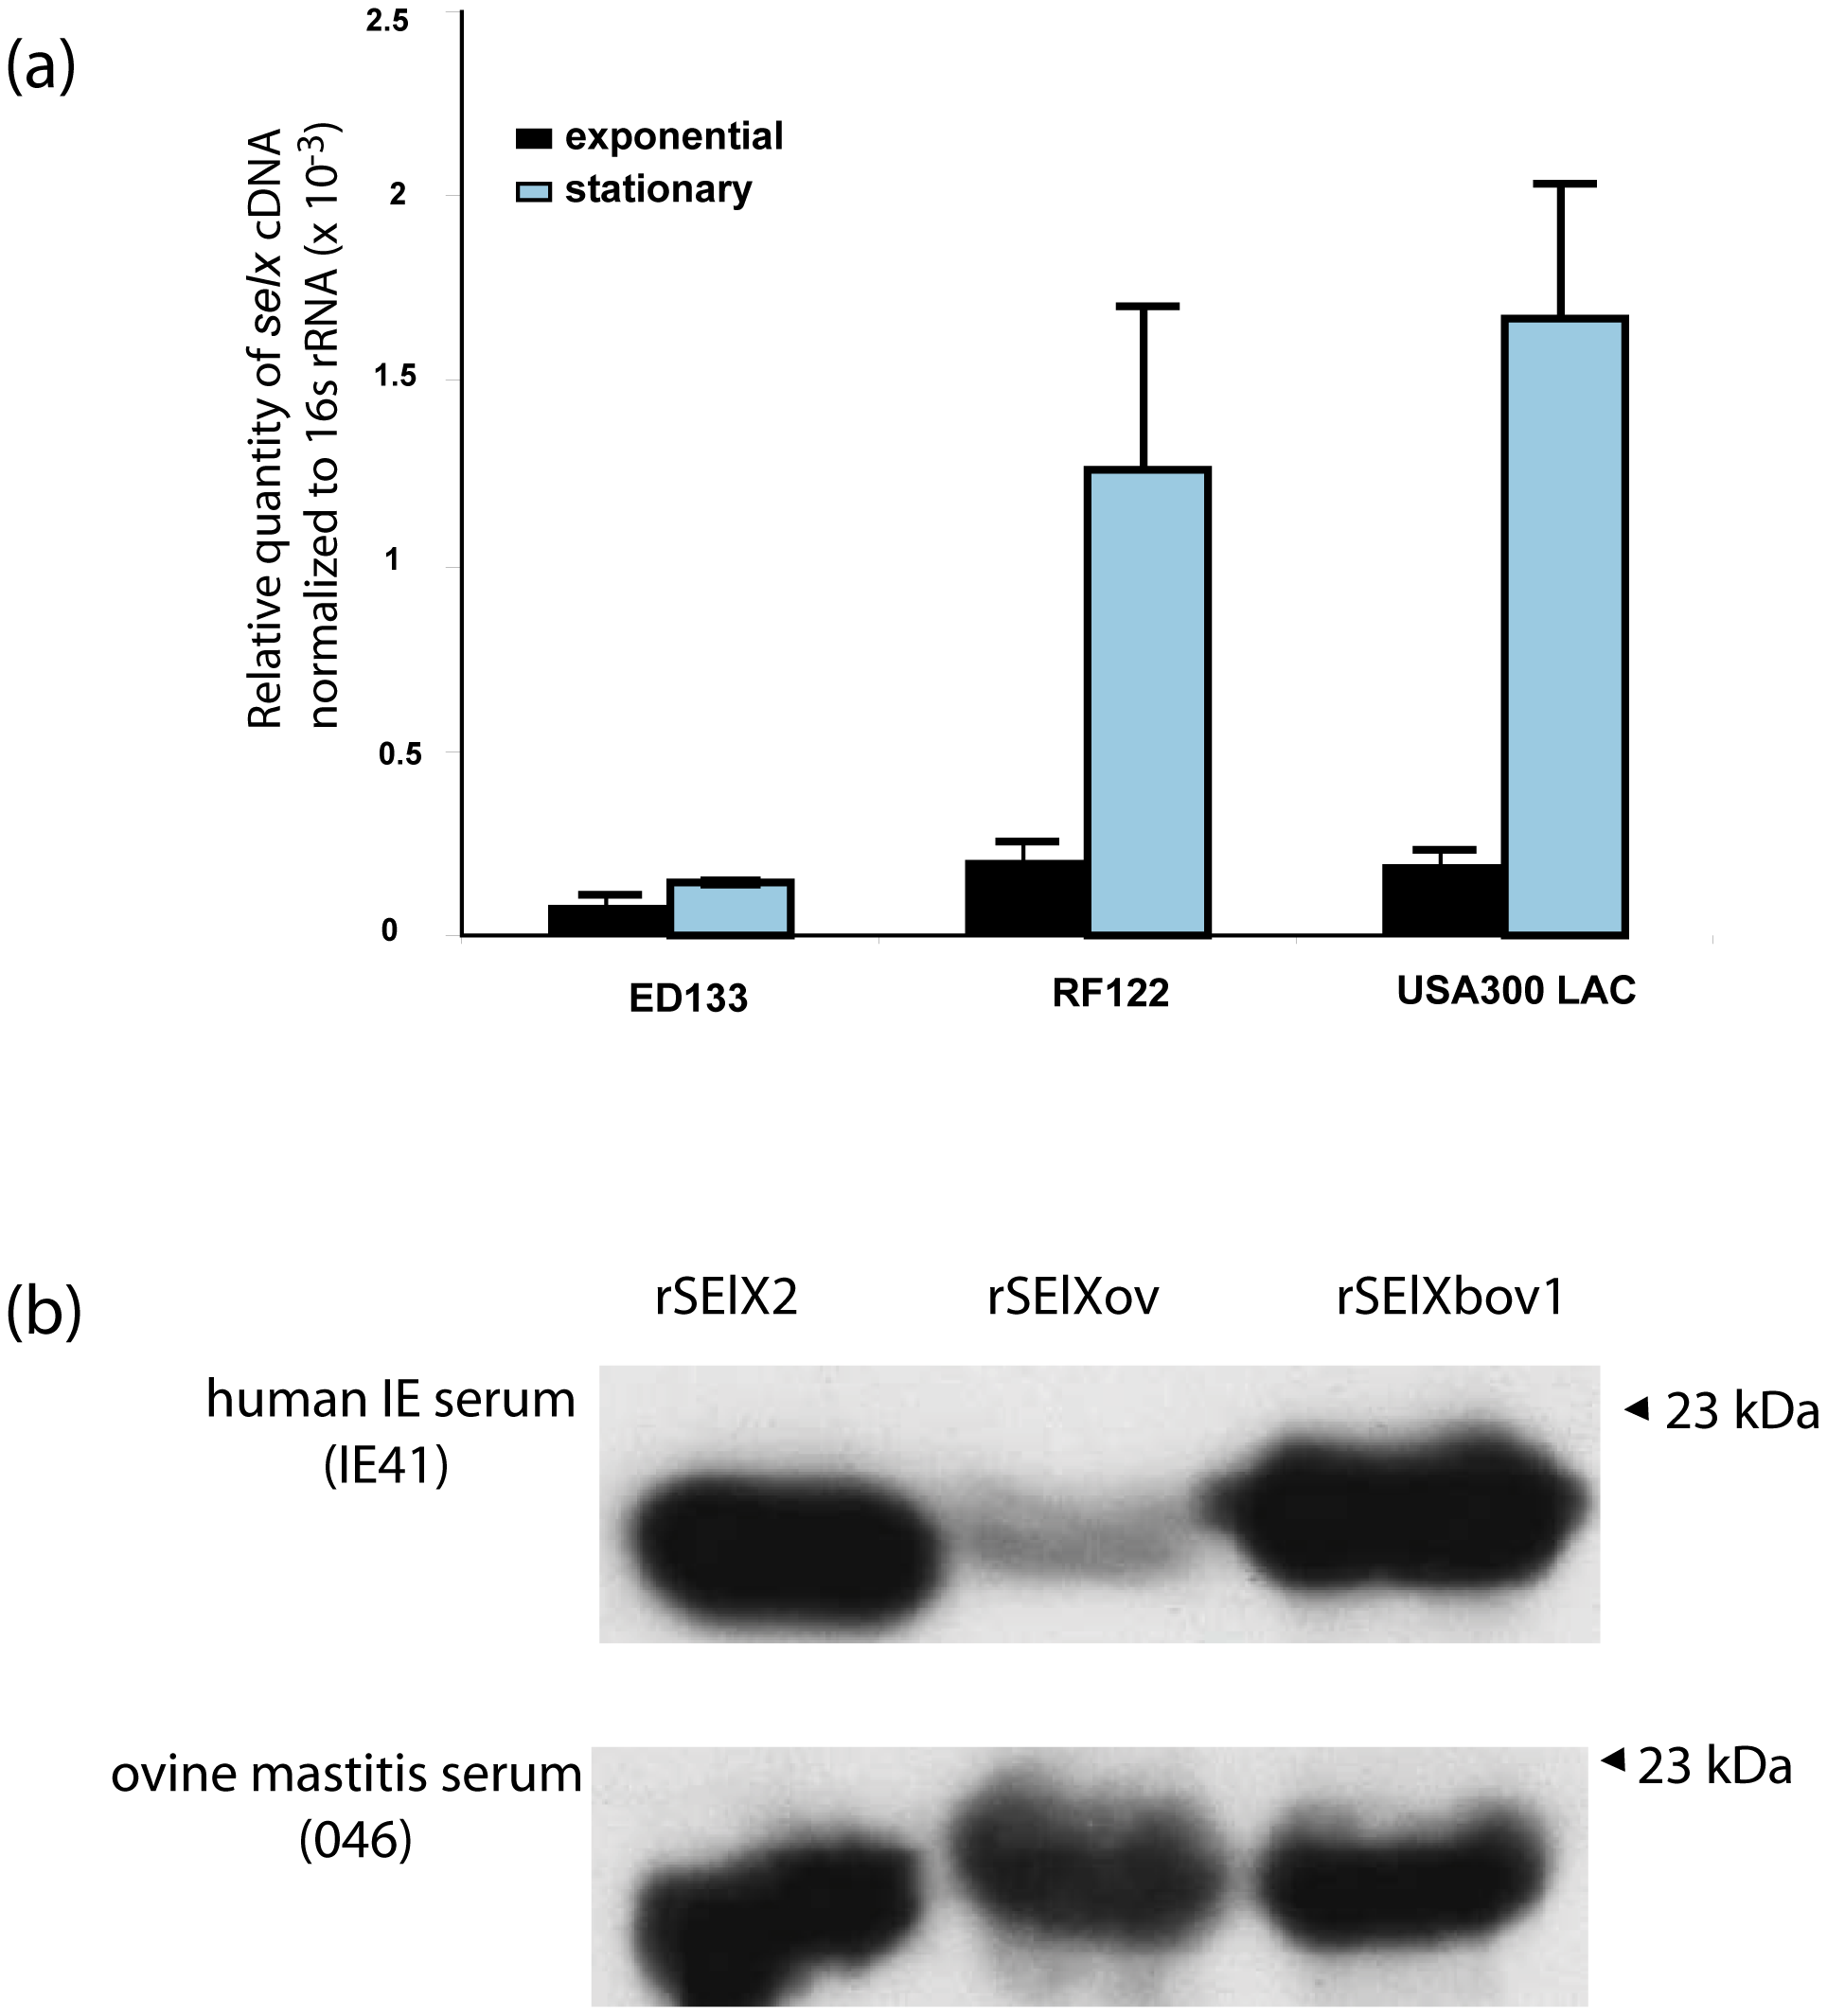 SElX is expressed by clinical isolates <i>in vitro</i> and during infection.